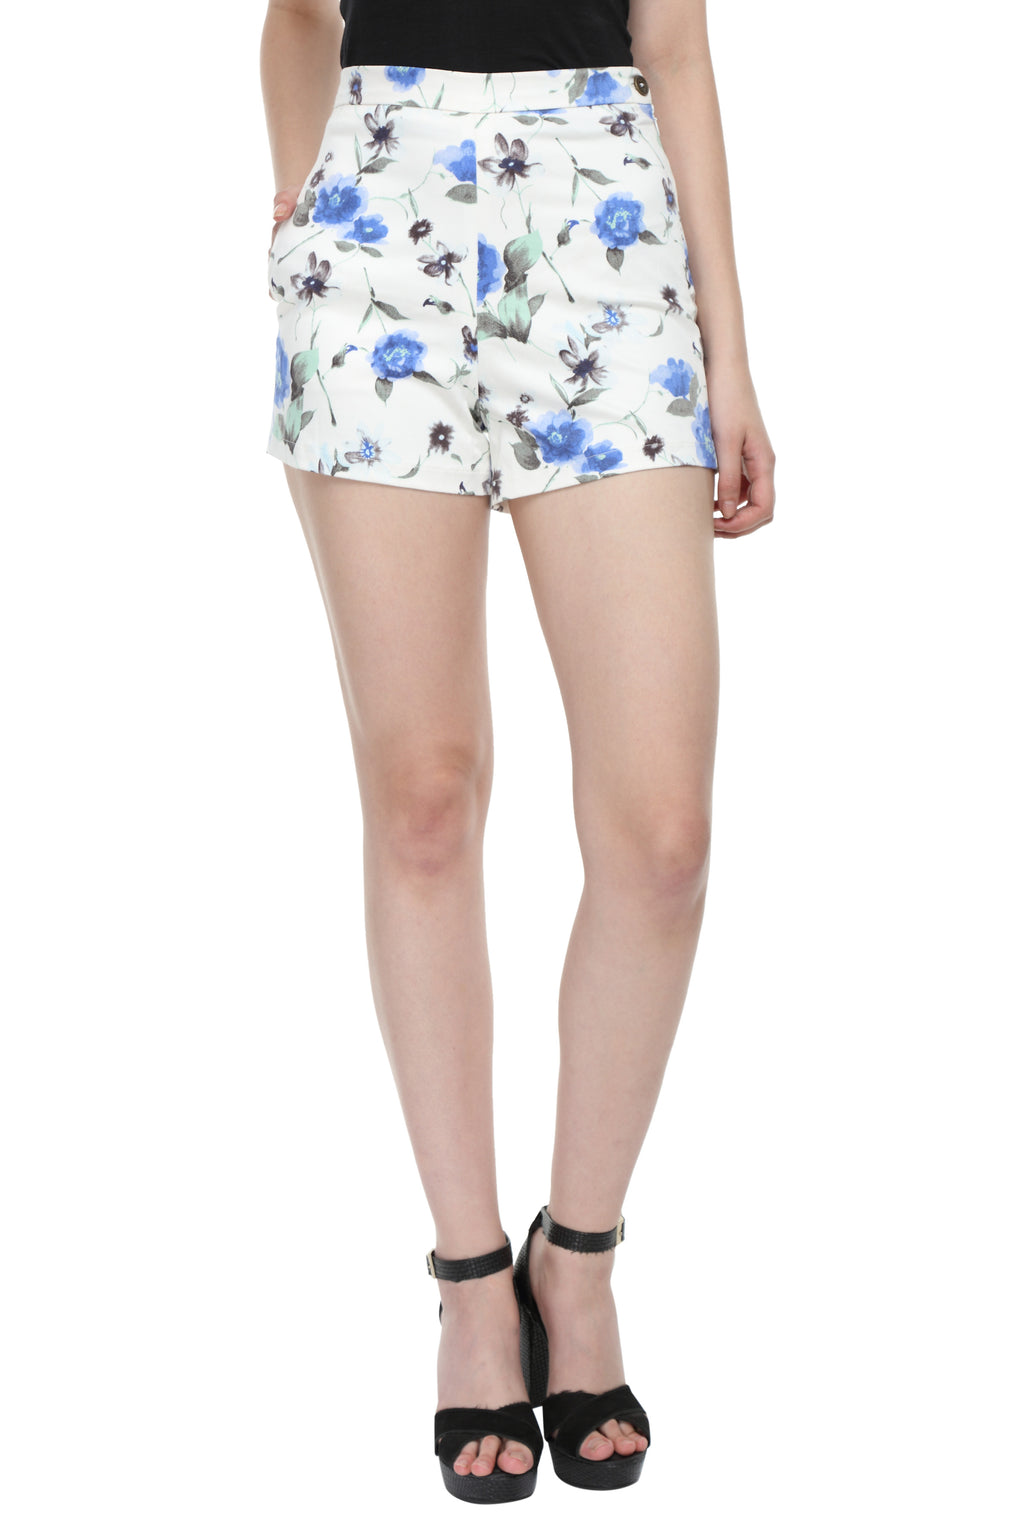 White & Blue Floral Print Highwaist Shorts